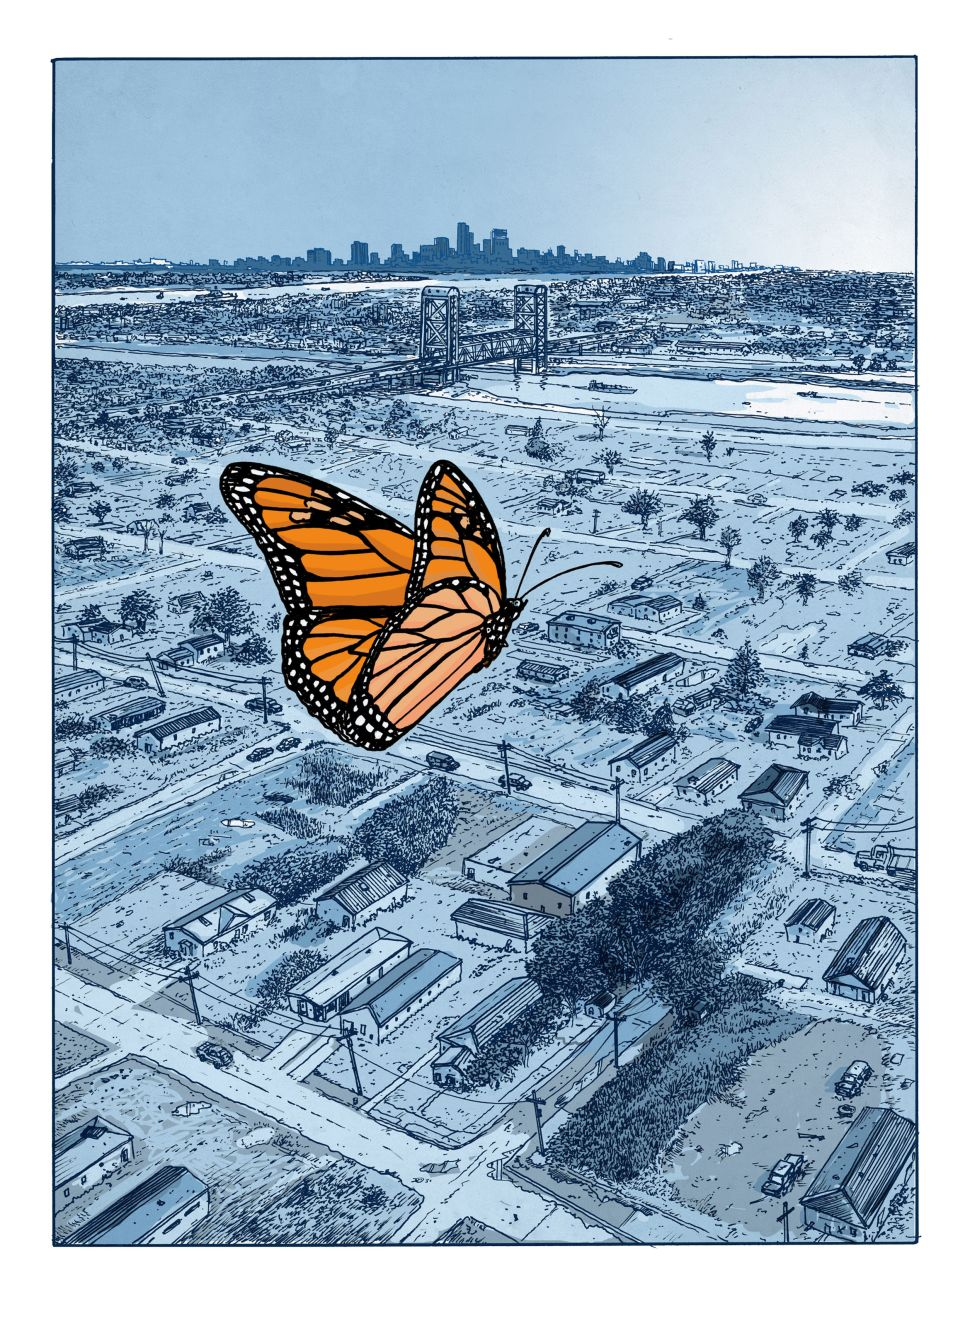 With Ruins, Peter Kuper Floats Like a Butterfly